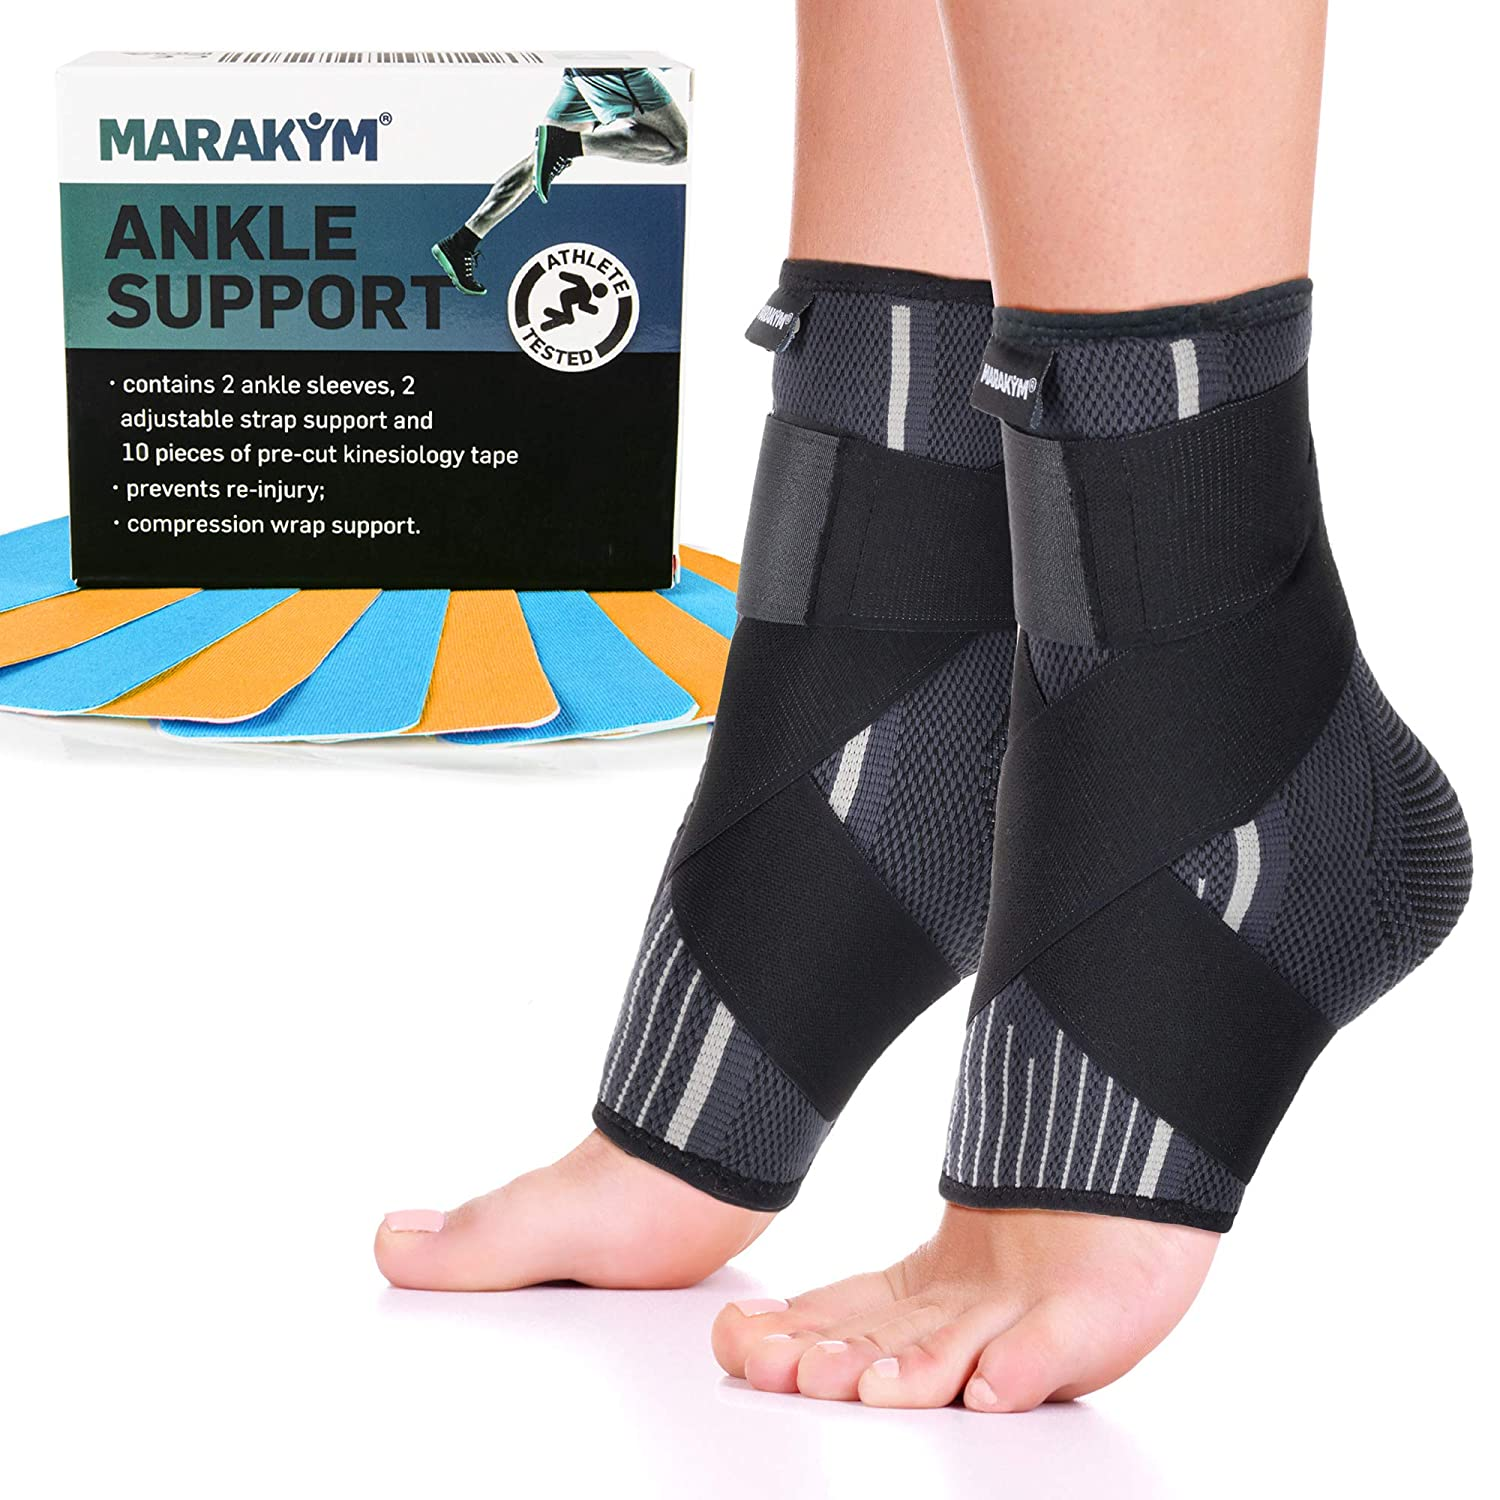 Premium Ankle Compression Socks Men & Women | Best Free Size Medical Ankle Support Pair(2 Pcs) With Compression Wrap Support For Improved Injury Prevention and Recovery - Bonus Kinesiology Tape & Carr: Industrial & Scientific